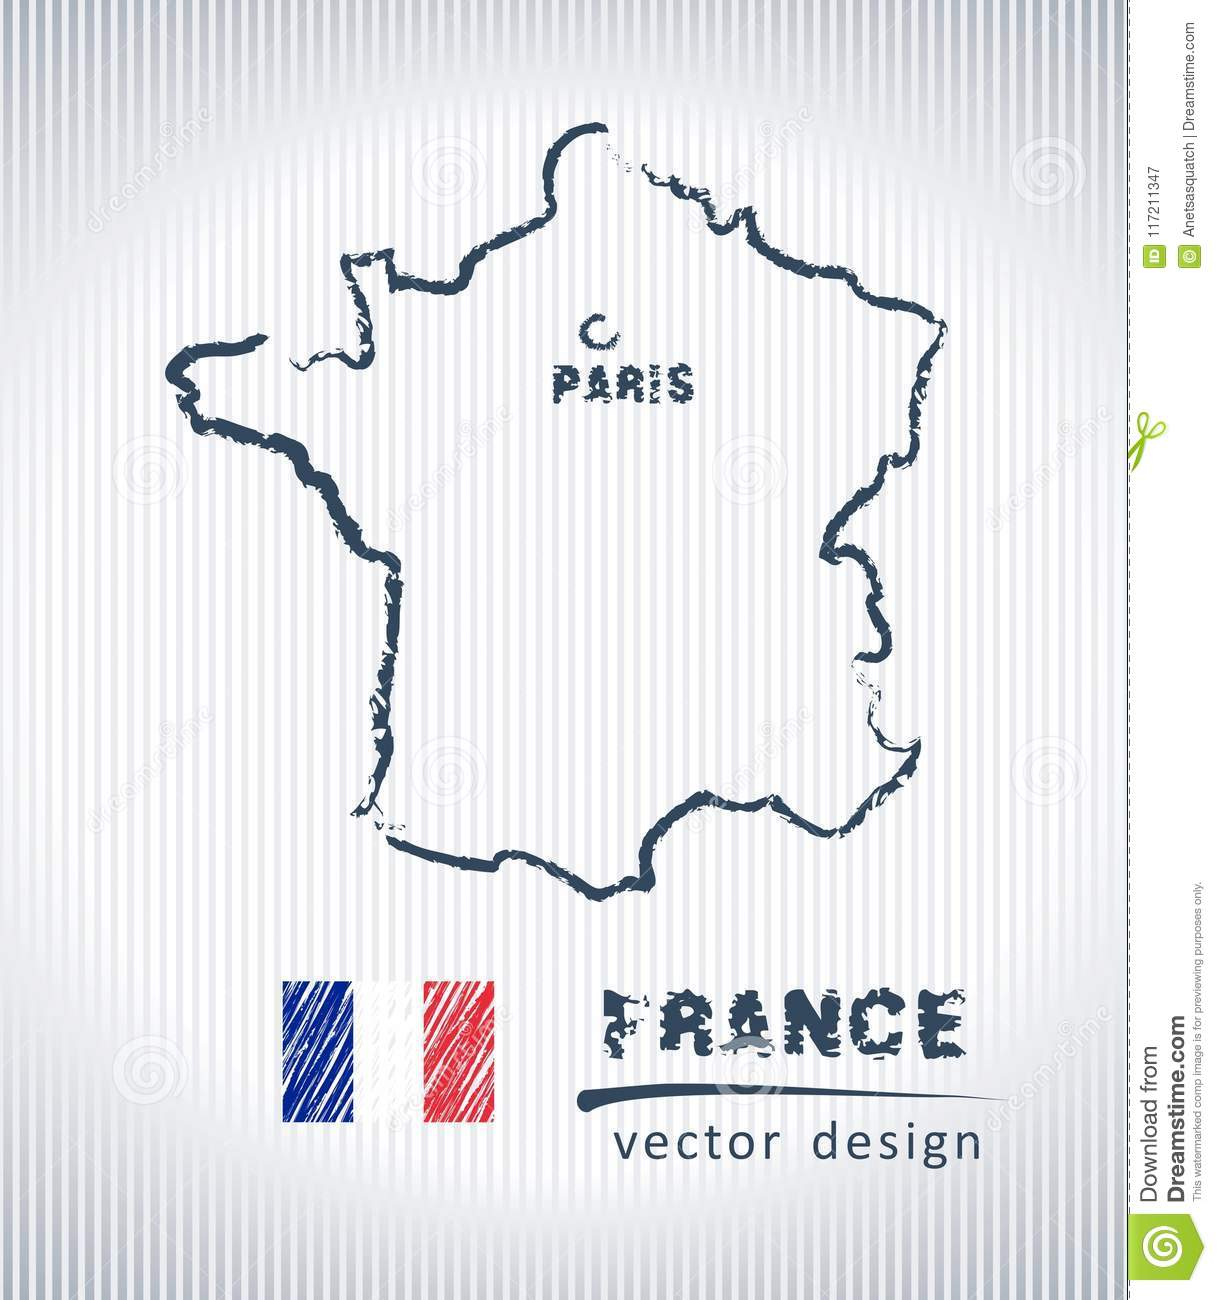 Map Of France Drawing.France Vector Chalk Drawing Map Isolated On A White Background Stock